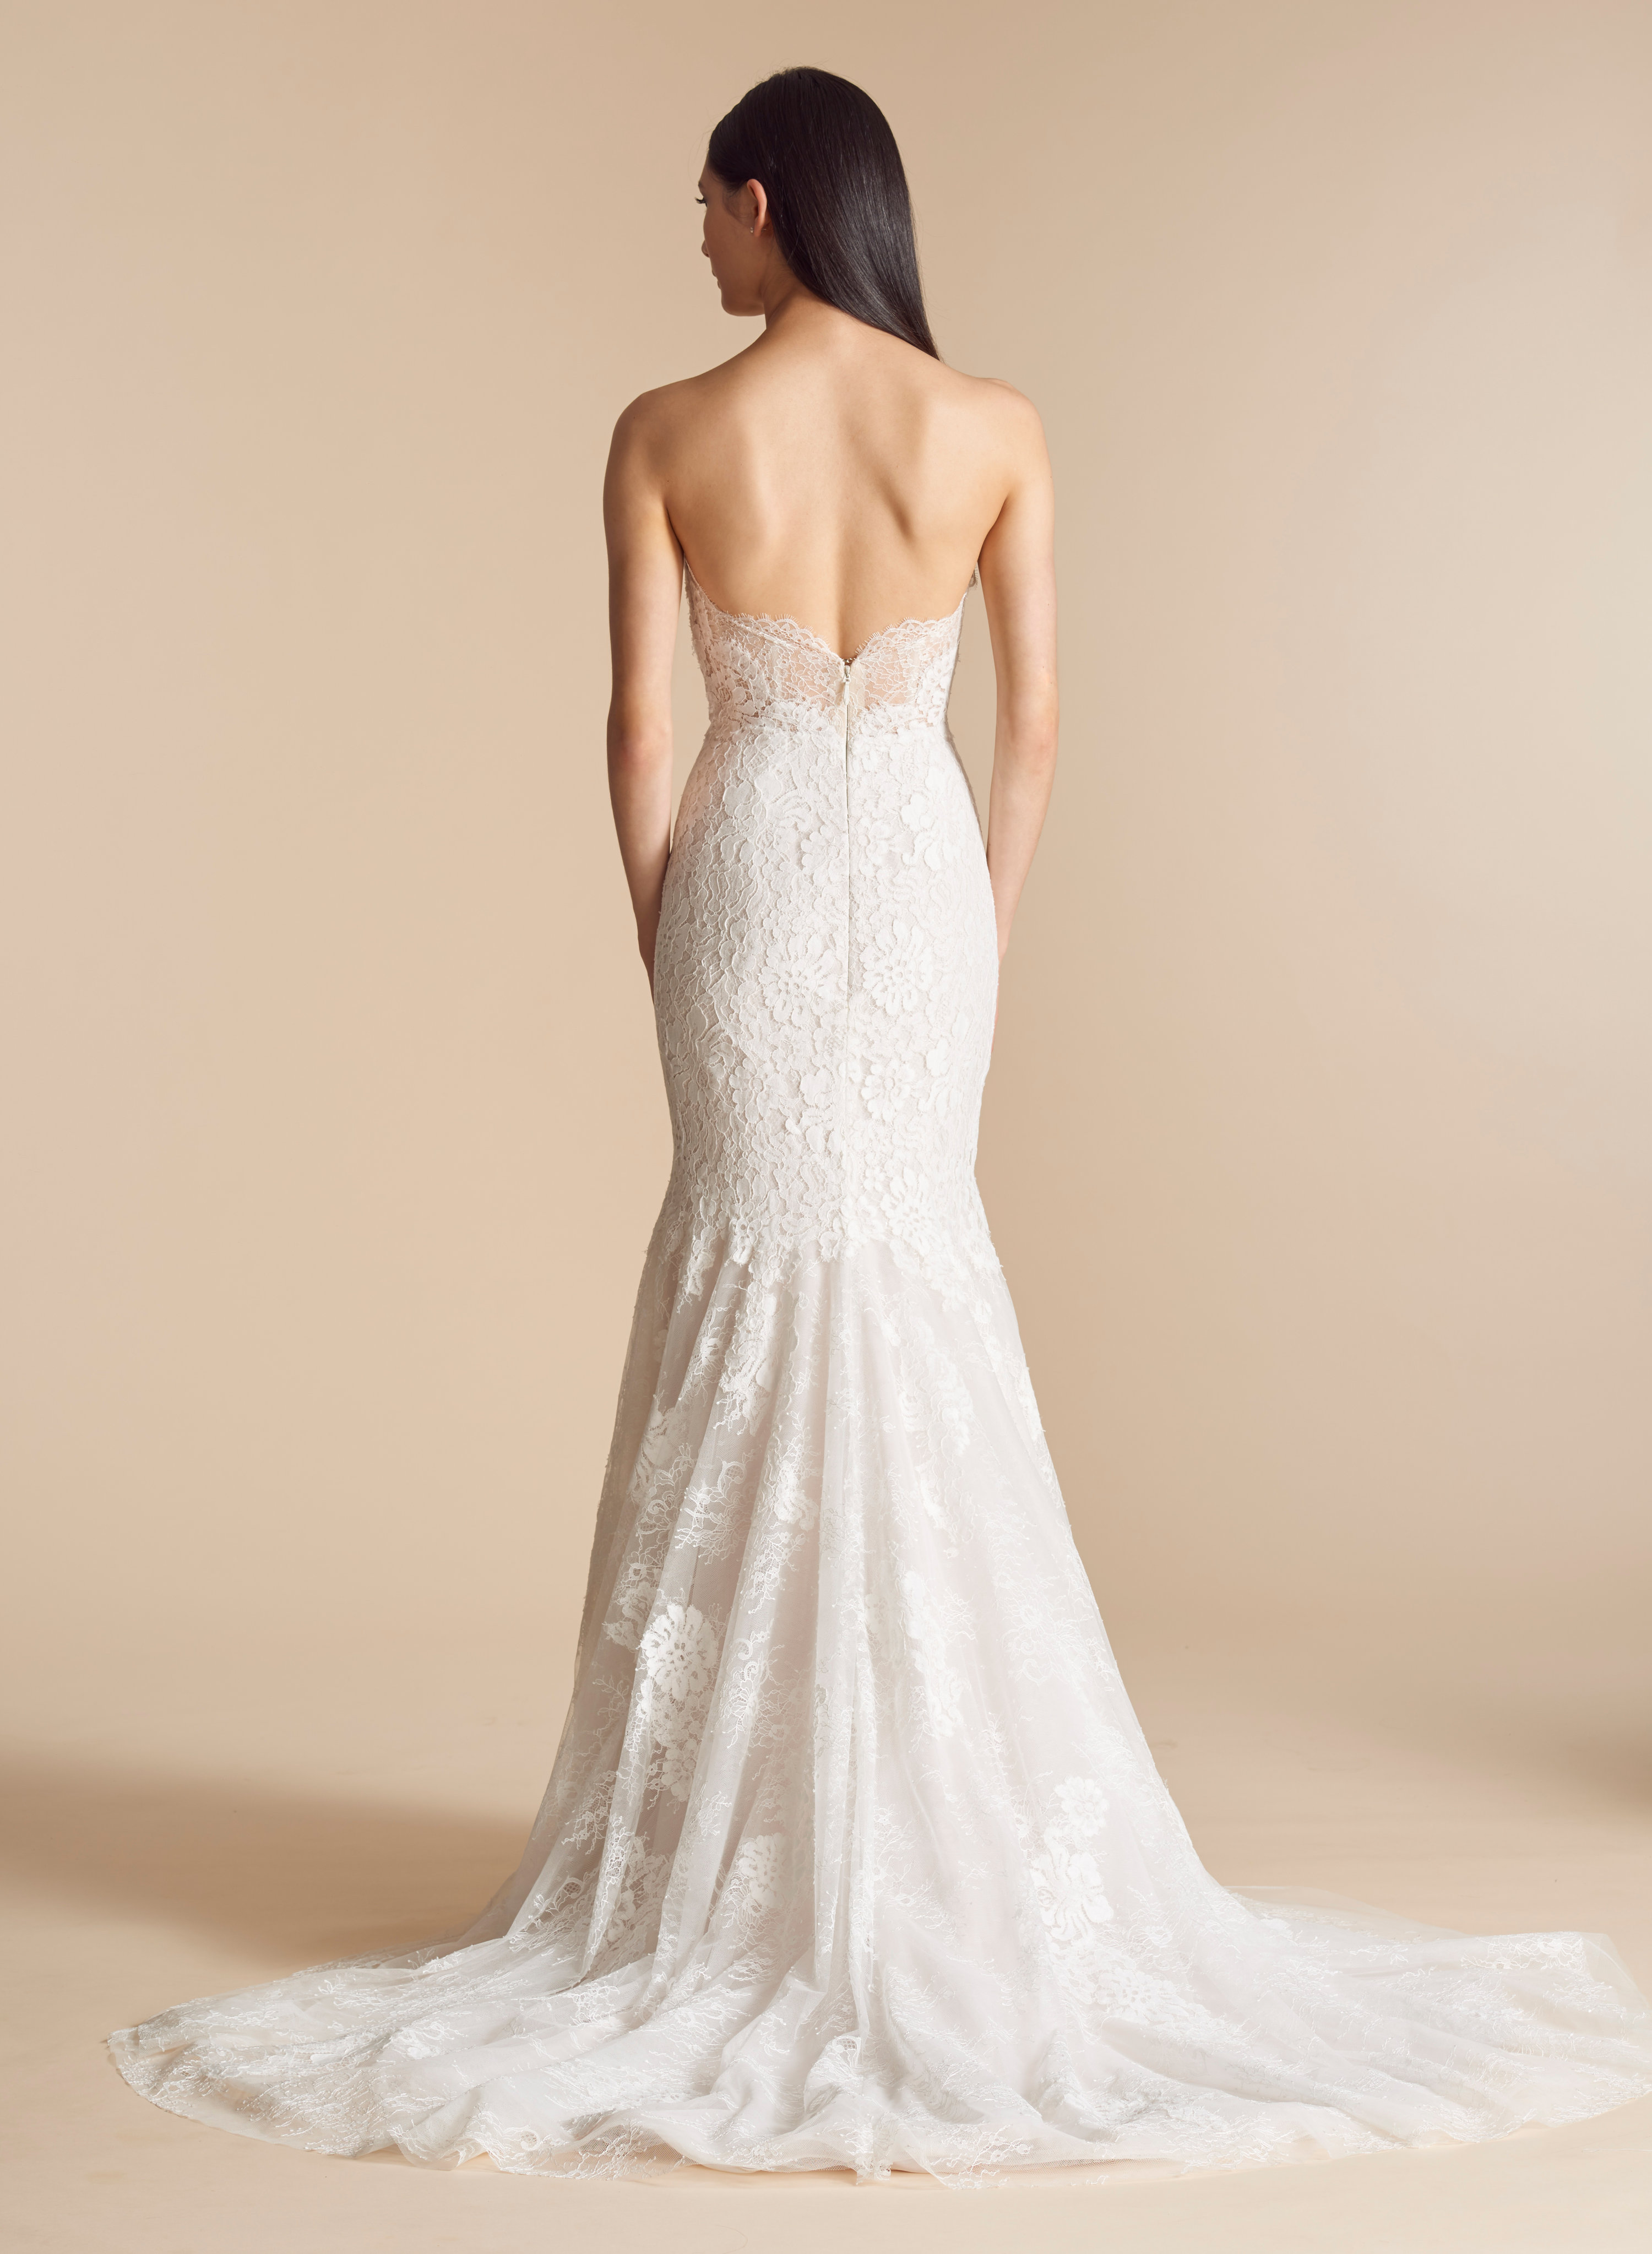 Bridal Gowns and Wedding Dresses by JLM Couture - Style 4808 Devereaux